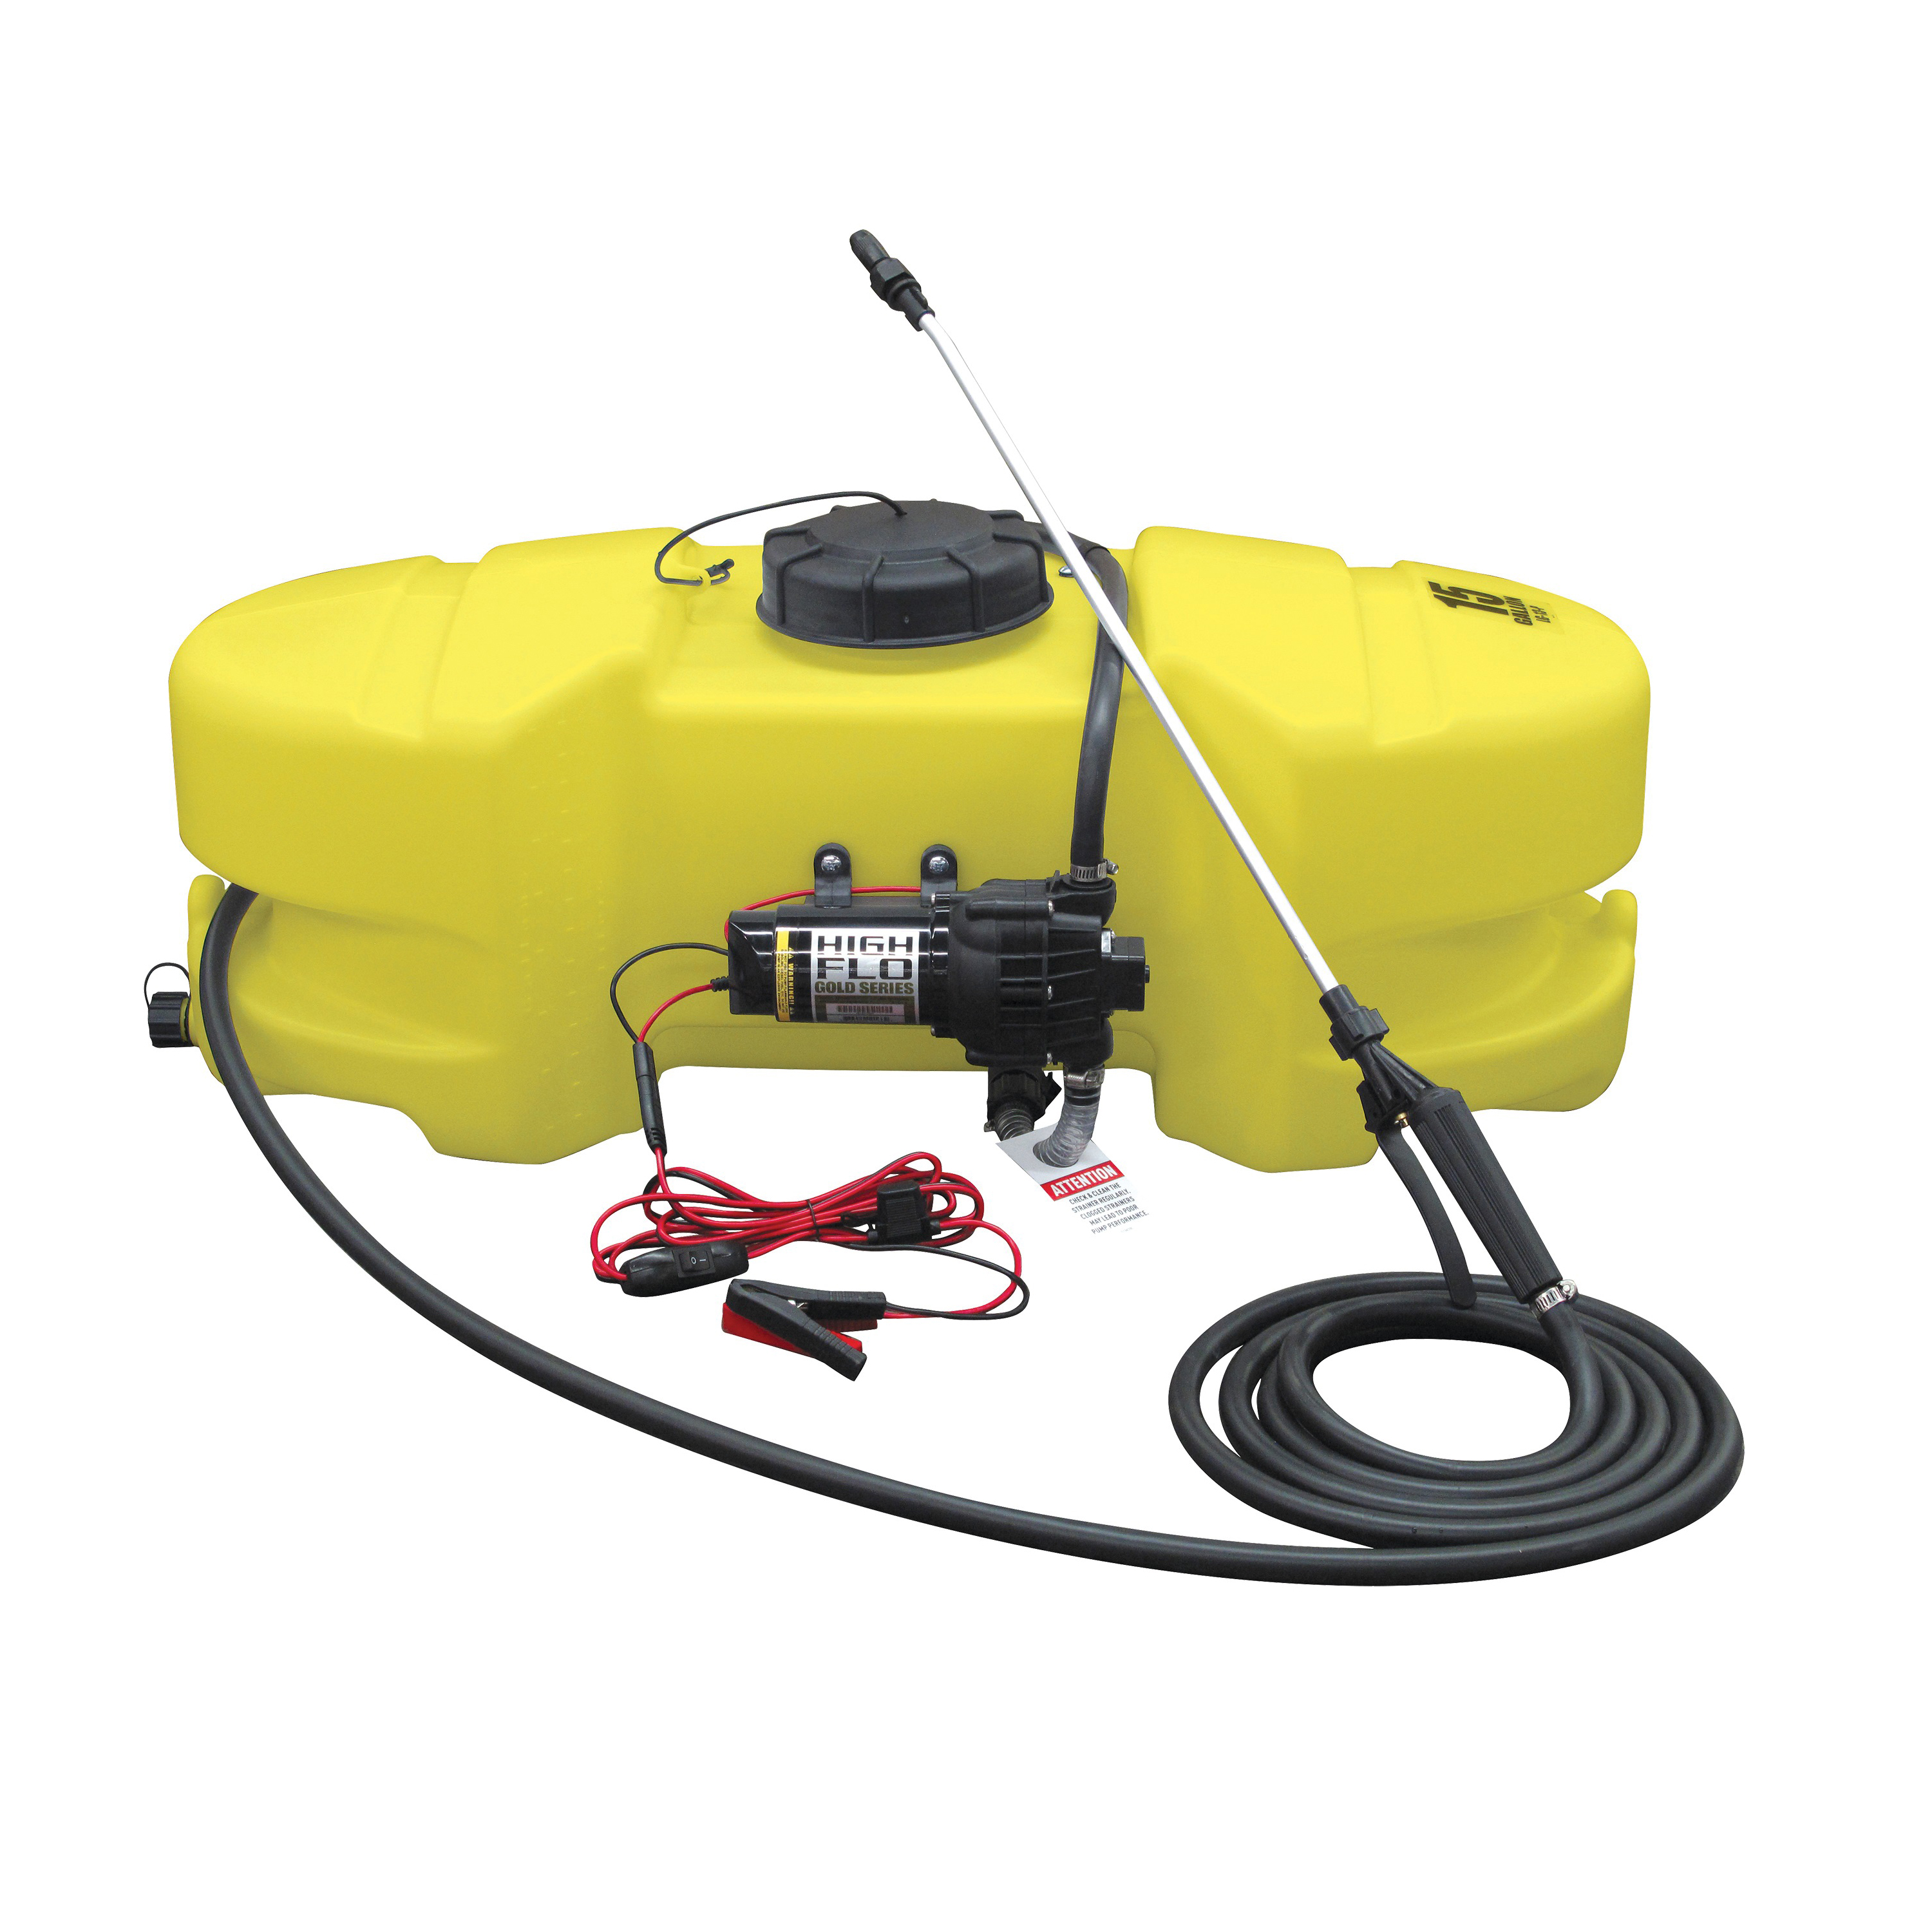 Picture of AG SOUTH Gold SC15-SS-GTNS Spot Sprayer, 15 gal Capacity, 15 ft L Hose